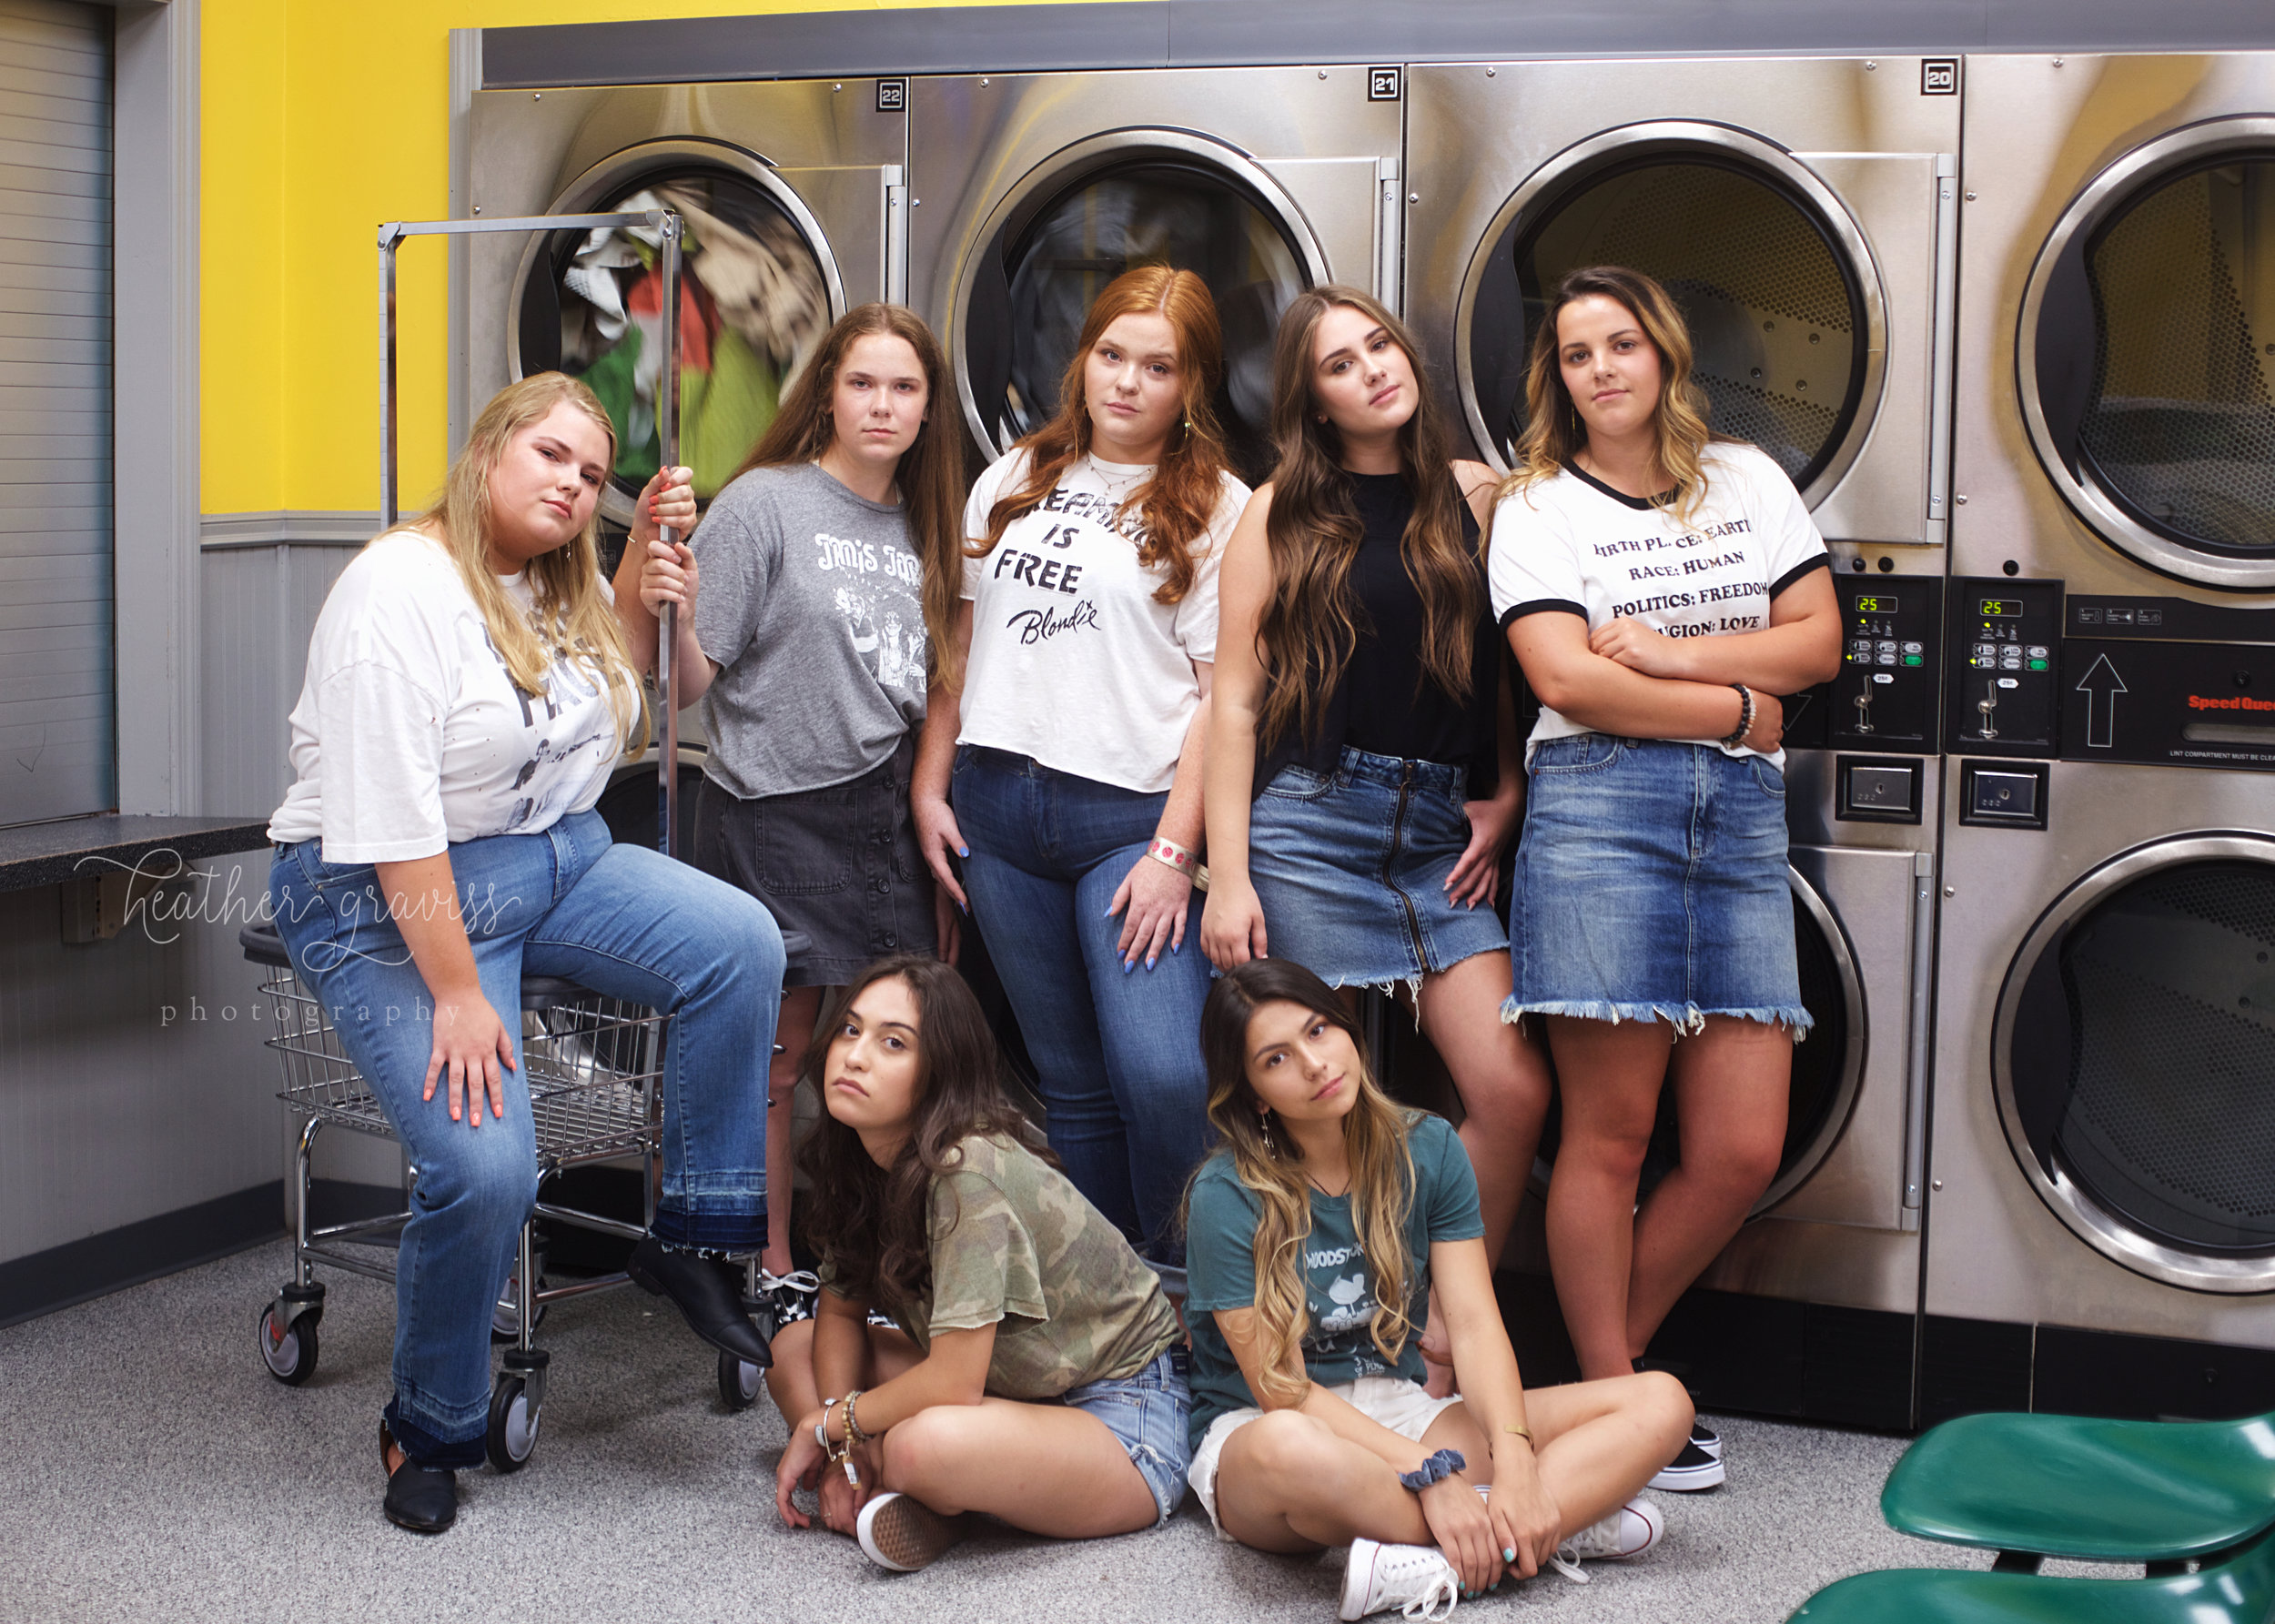 seniors-in-a-laundromat.jpg